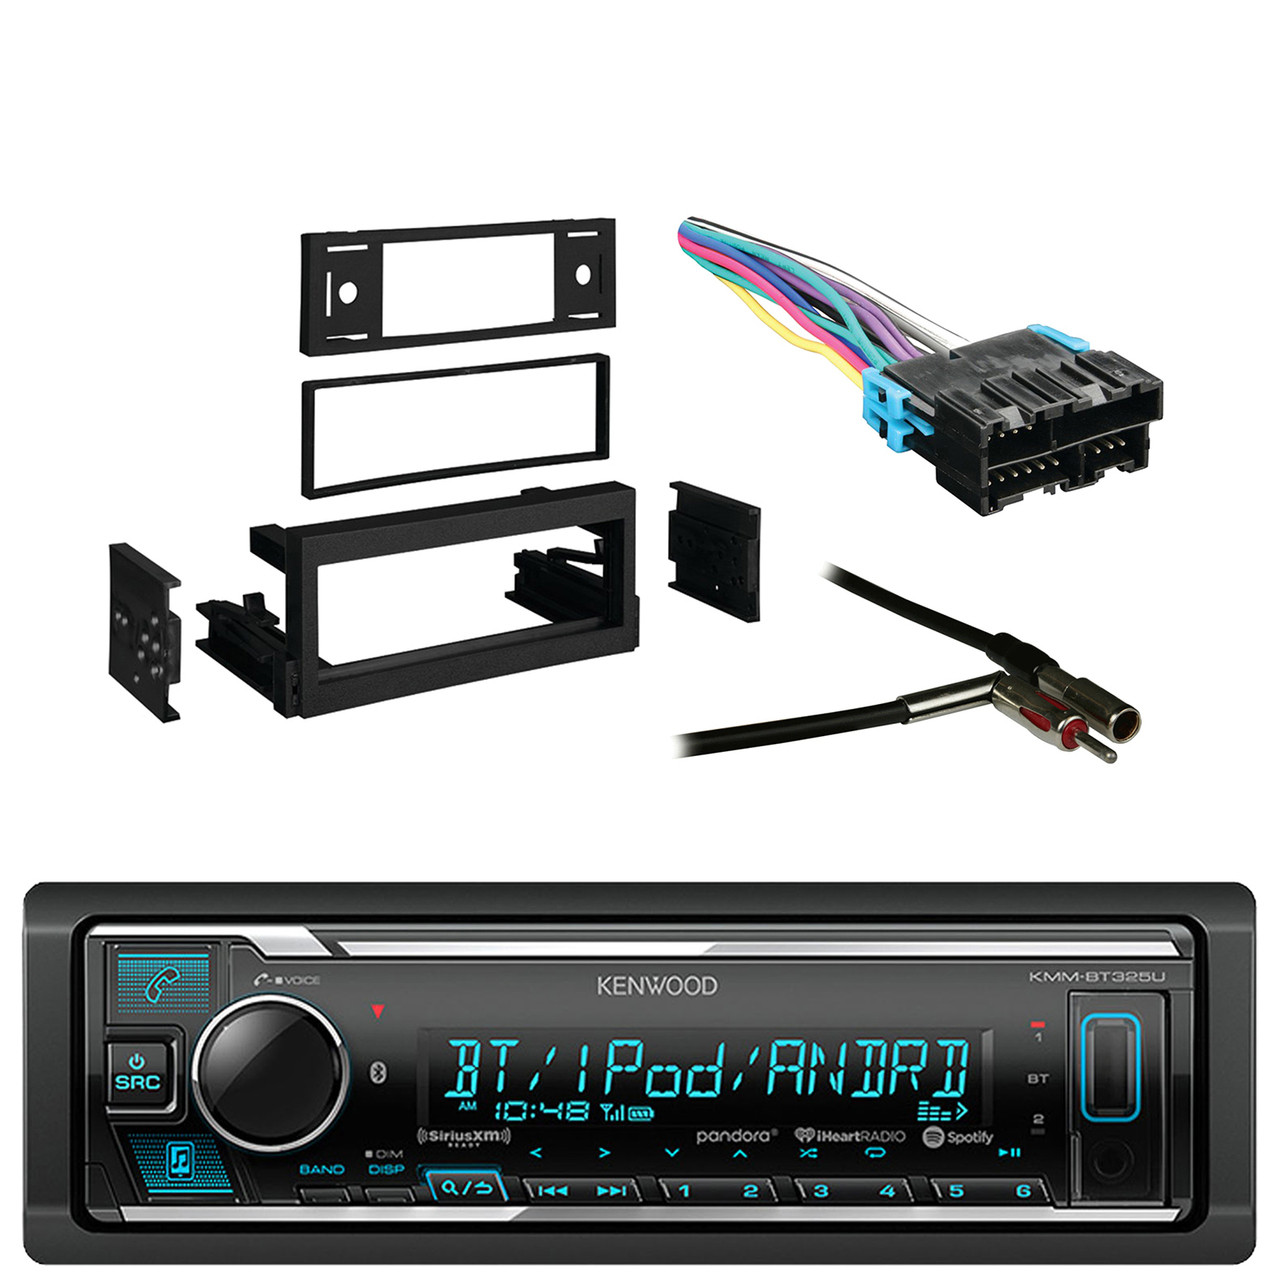 kenwood receiver with am fm tuner with bluetooth with metra dash kit gm radio wiring color code delco radio cd player wiring car tuning [ 1280 x 1280 Pixel ]